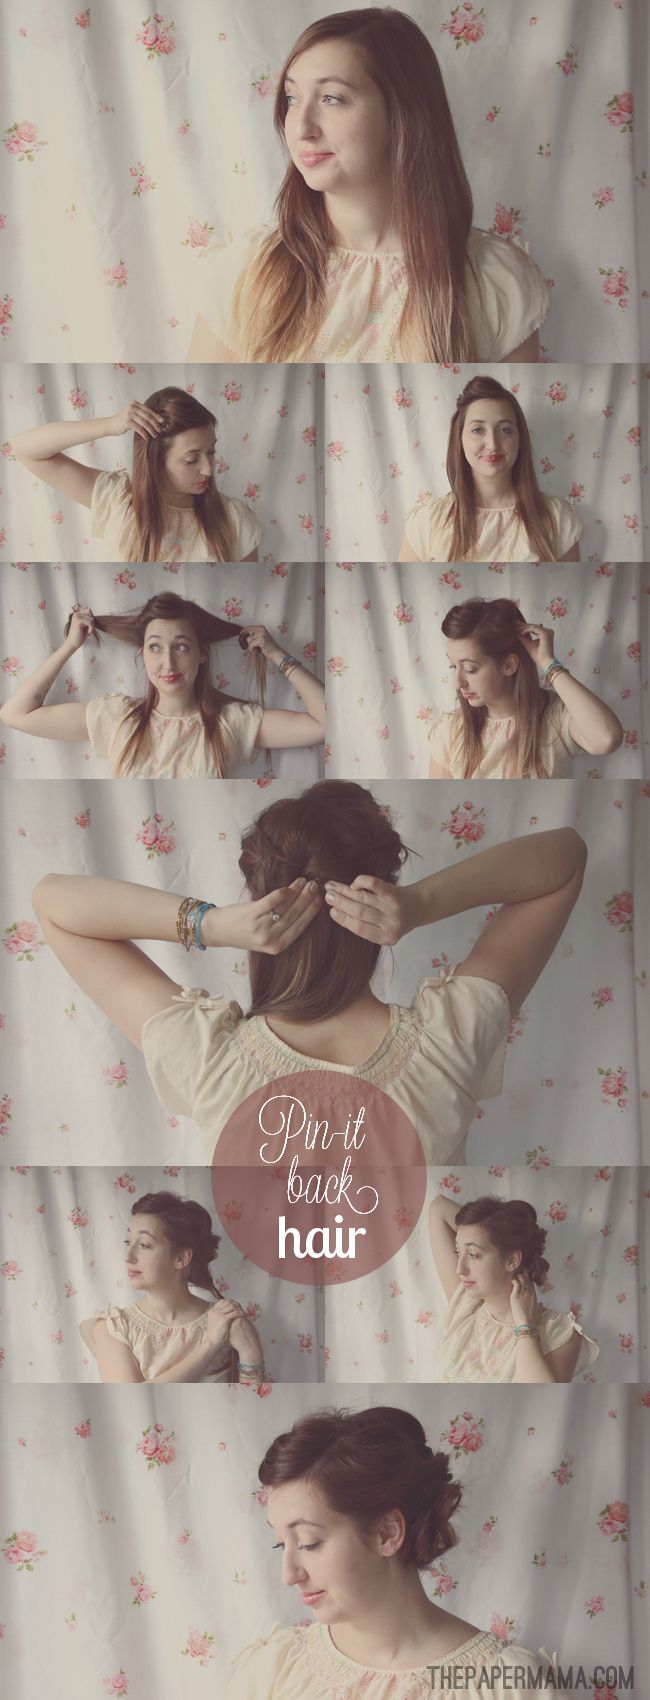 Pin-it Back Hair Tutorial. Simple DIY hair style.Diy Hairstyles, Hair Tutorials, Bangs Style Hair Up Dos, Simple Diy, Cutest Hairstyles, Adorable Hairstyles, Hair Style, Paper Mama, Bobby Pin